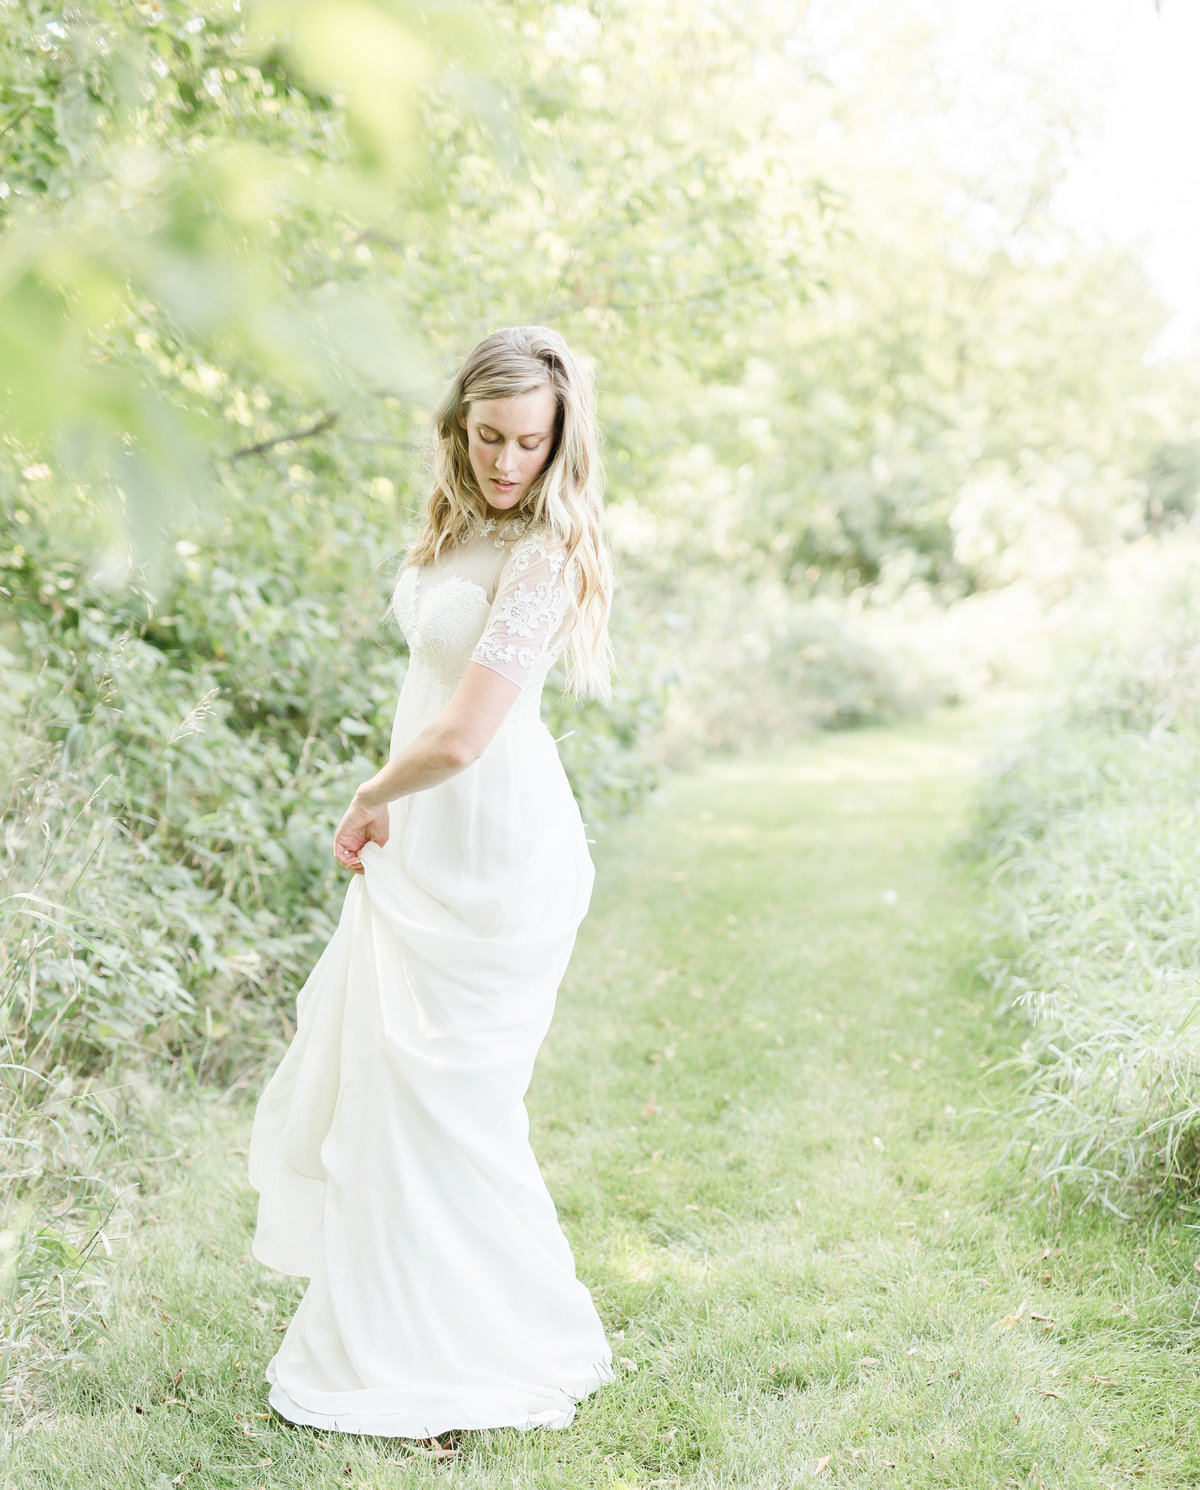 Kailey - Styled Shoot - New Edits-20